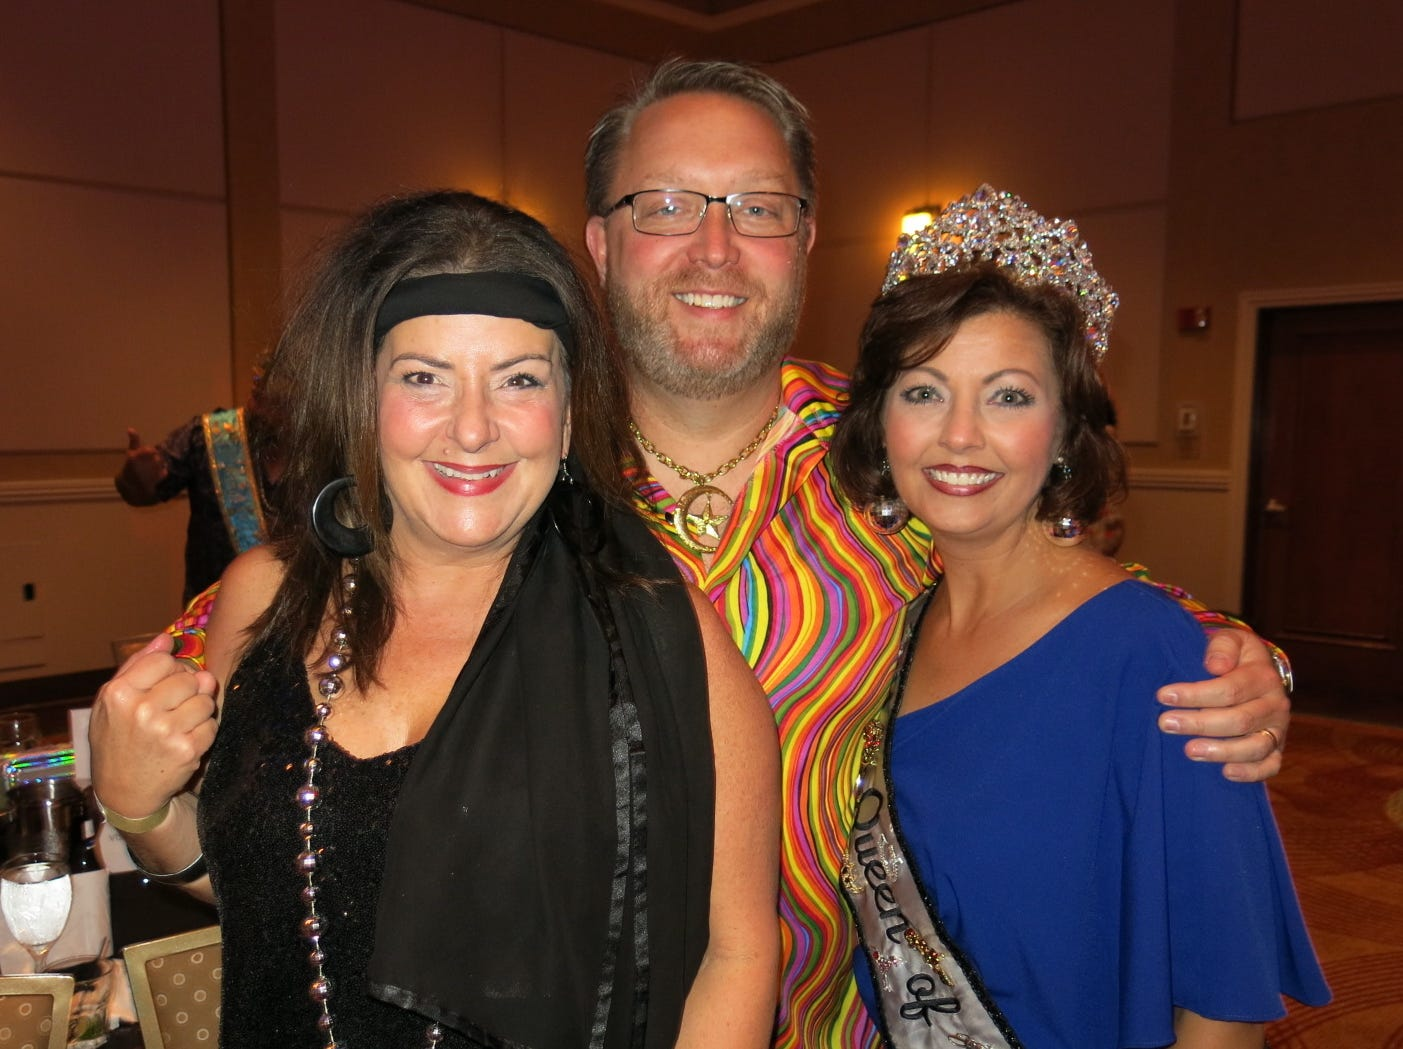 Krewe Sobek Royalty Coronation was Saturday at Sam's Town.